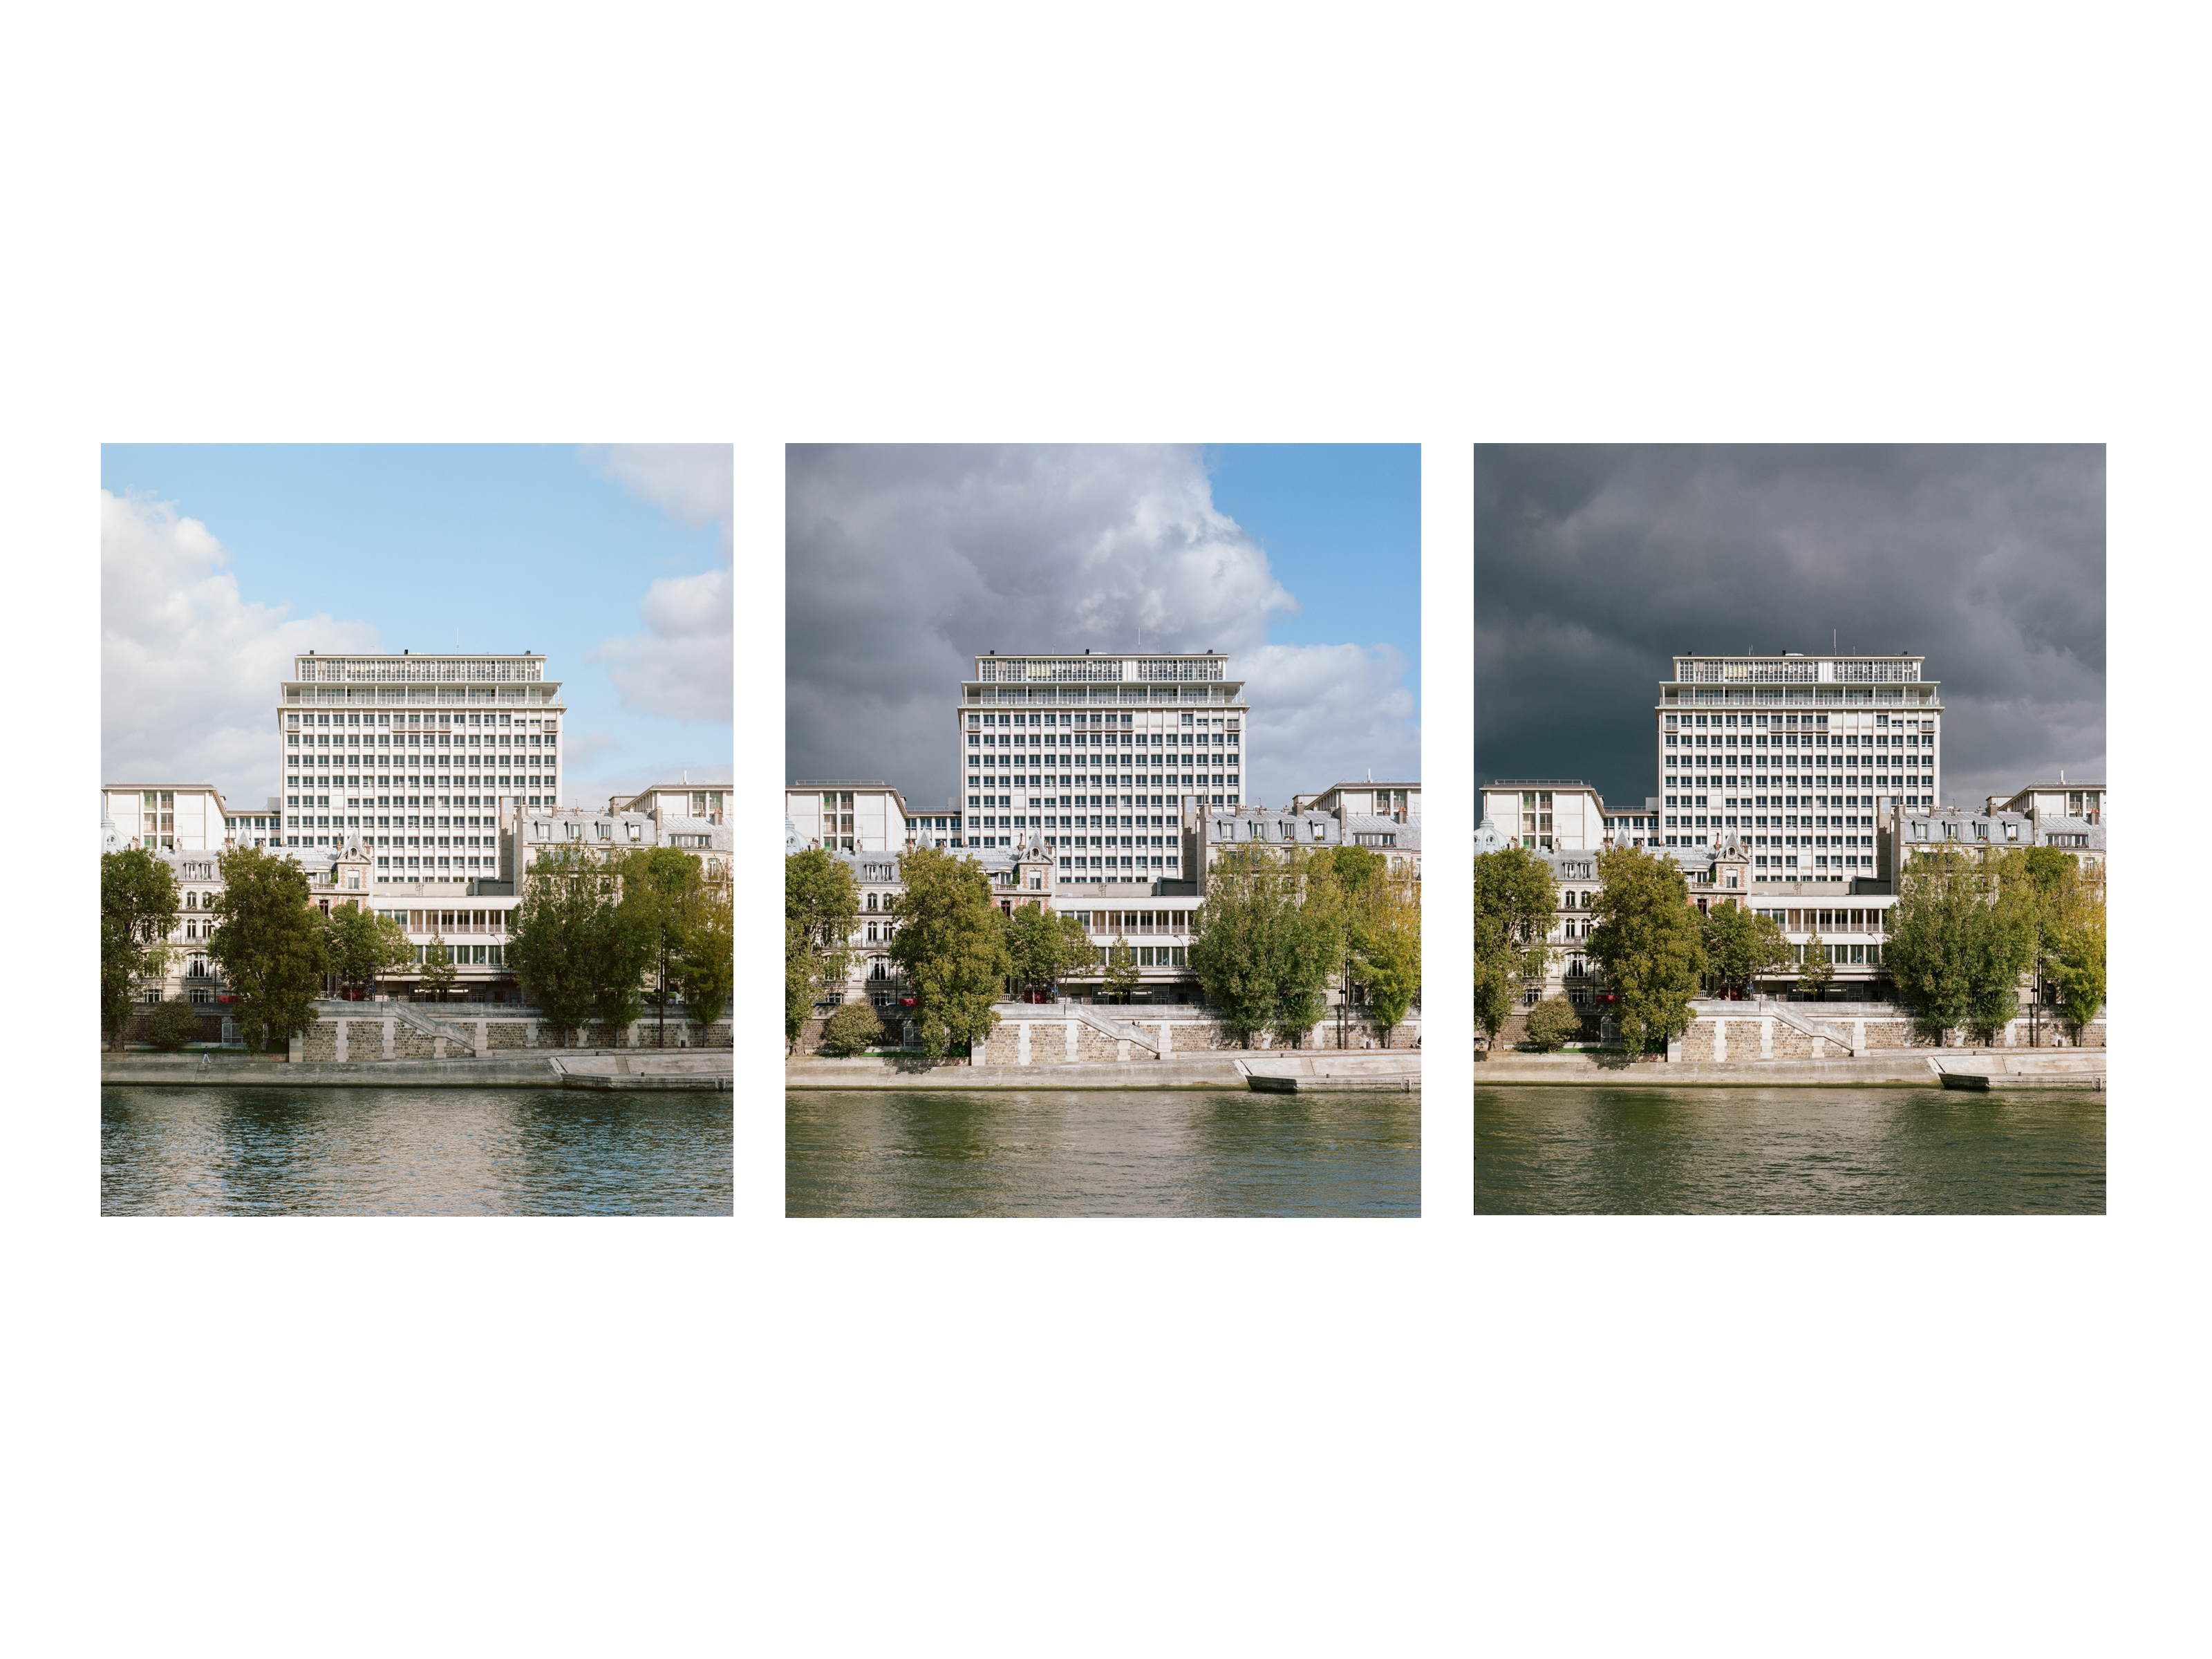 Morland, l'île, field study in the framework of Reinventer Paris competition    Atmosphérique narratives | Production Insurrection for David Chipperfield Architects